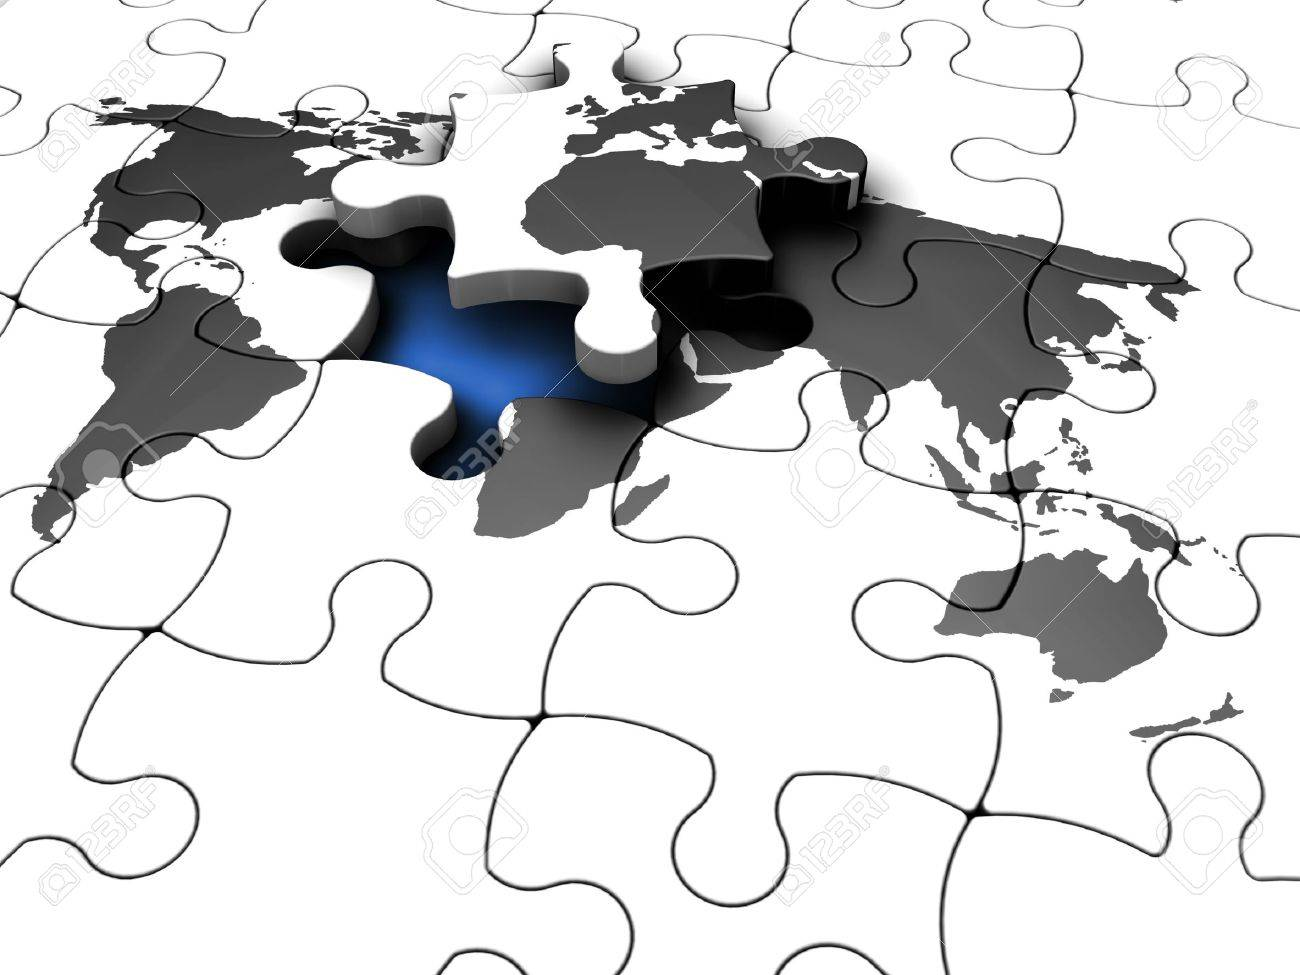 3d render of a jigsaw puzzle of a world map with the final piece 3d render of a jigsaw puzzle of a world map with the final piece lifted out gumiabroncs Gallery